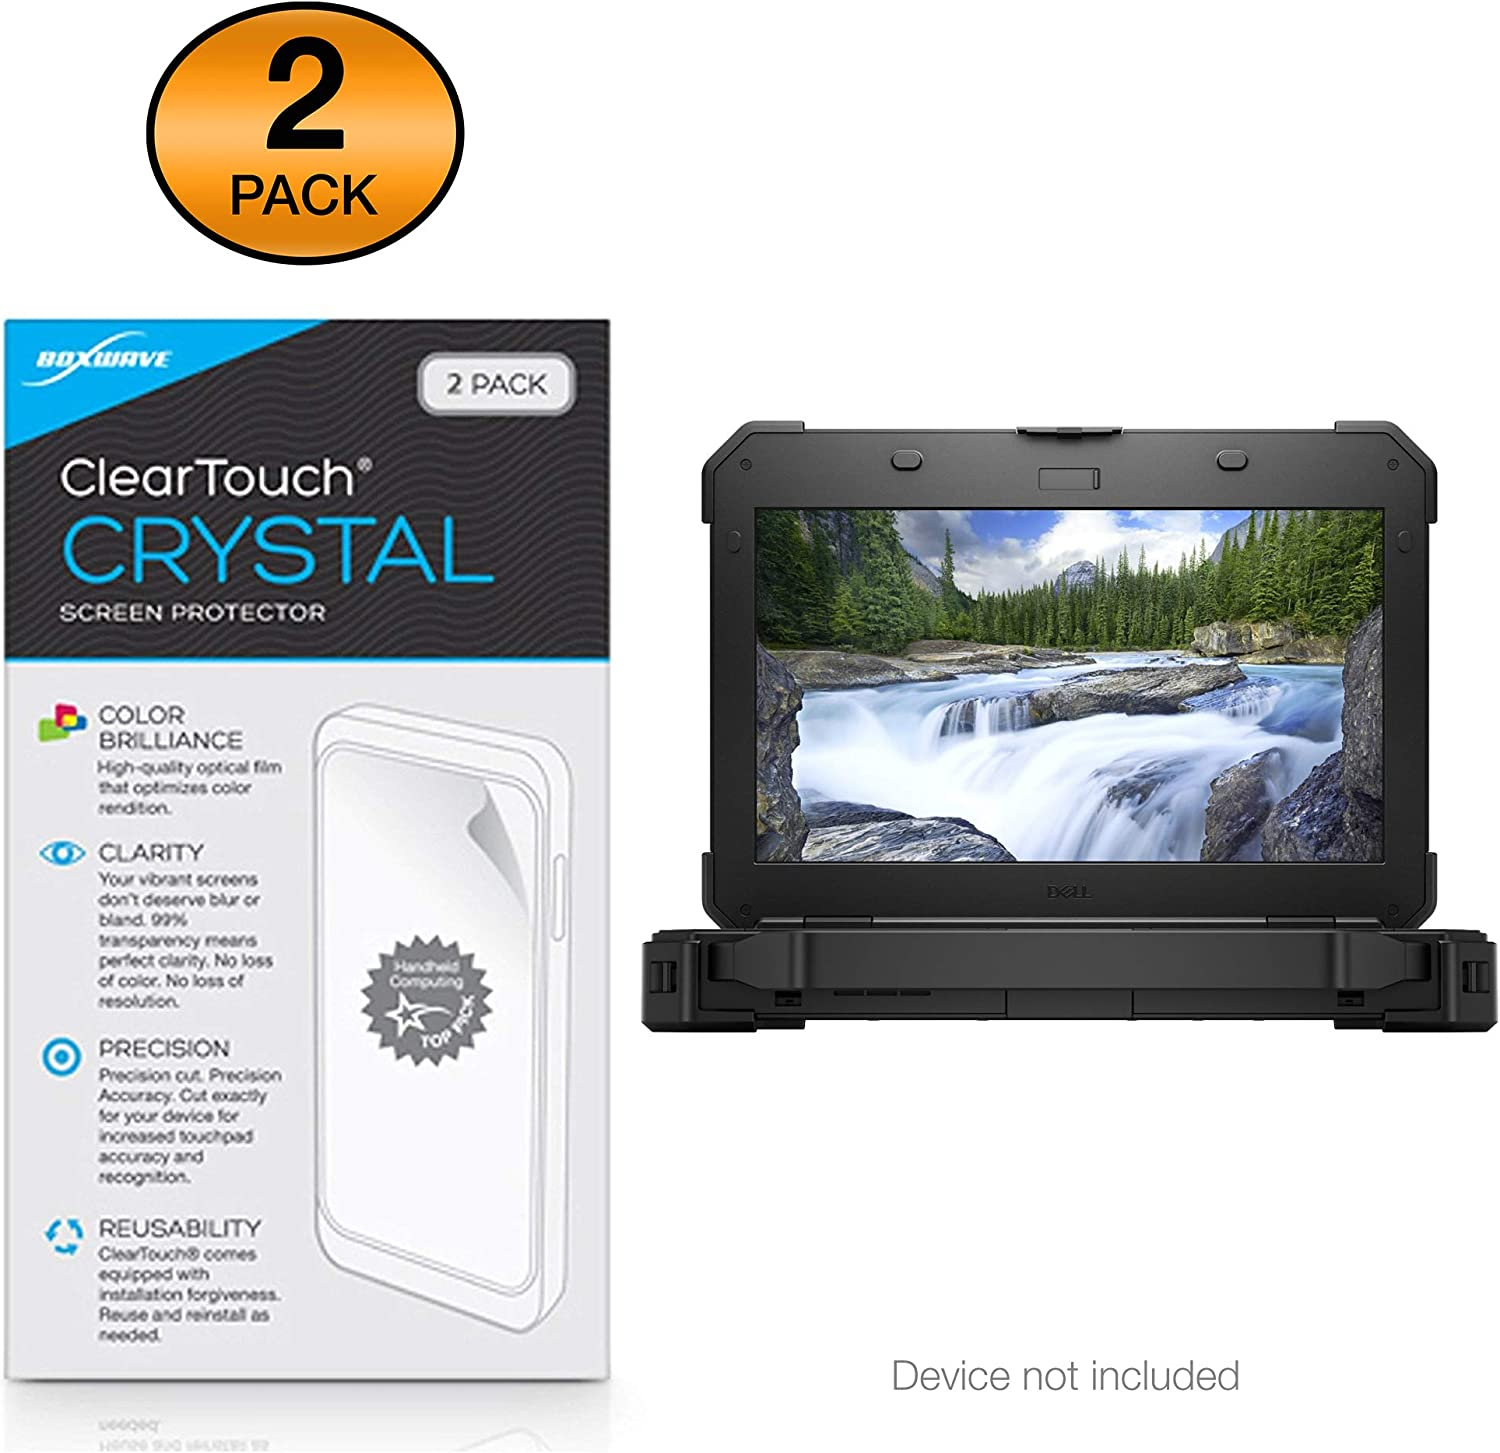 Dell Latitude 5420 Rugged Screen Protector ClearTouch Crystal HD Film Skin BoxWave Shields from Scratches for Dell Latitude 5420 Rugged 2-Pack